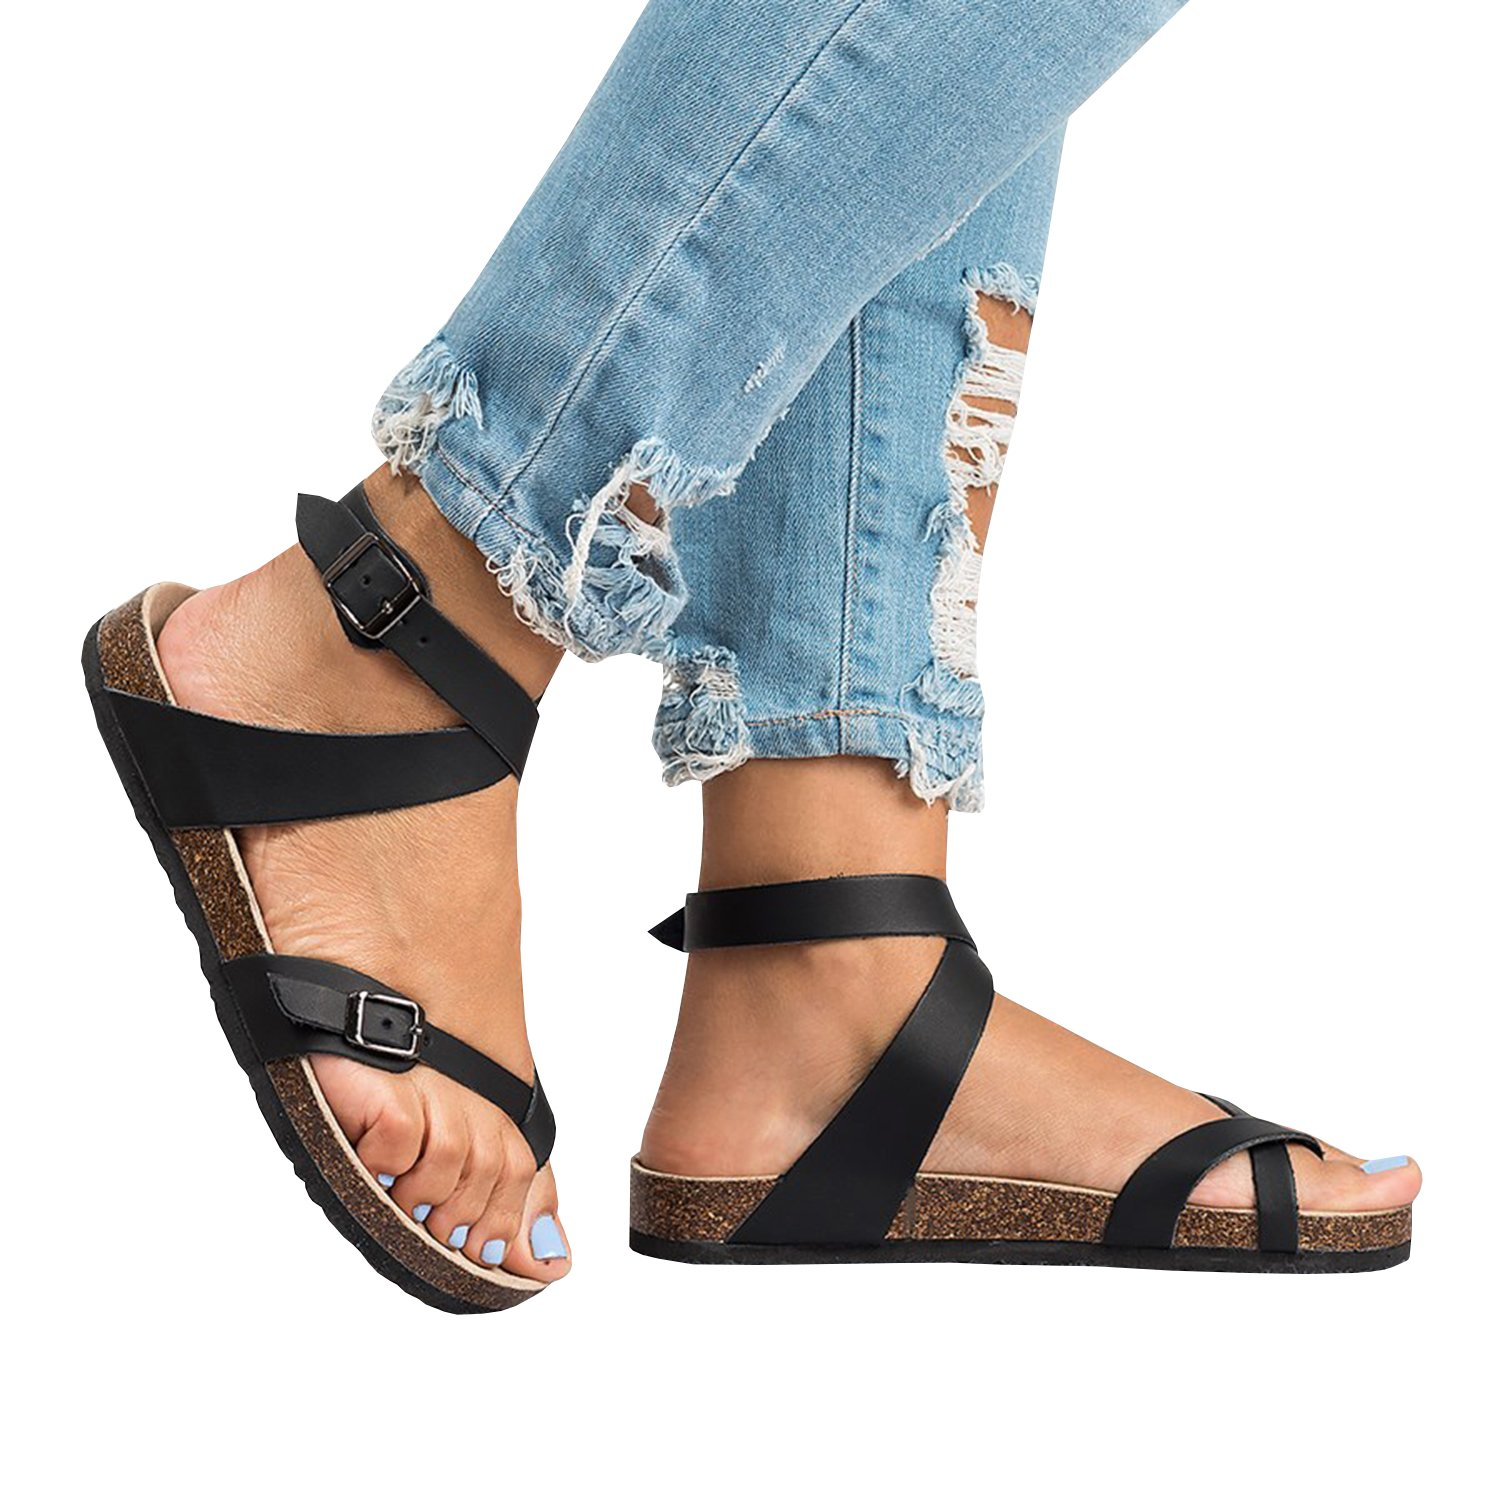 Womens Thong Strappy Gladiator Flat Sandals Summer T Strap Ankle Strap Buckle Cork Sole Flip Flops by Syktkmx